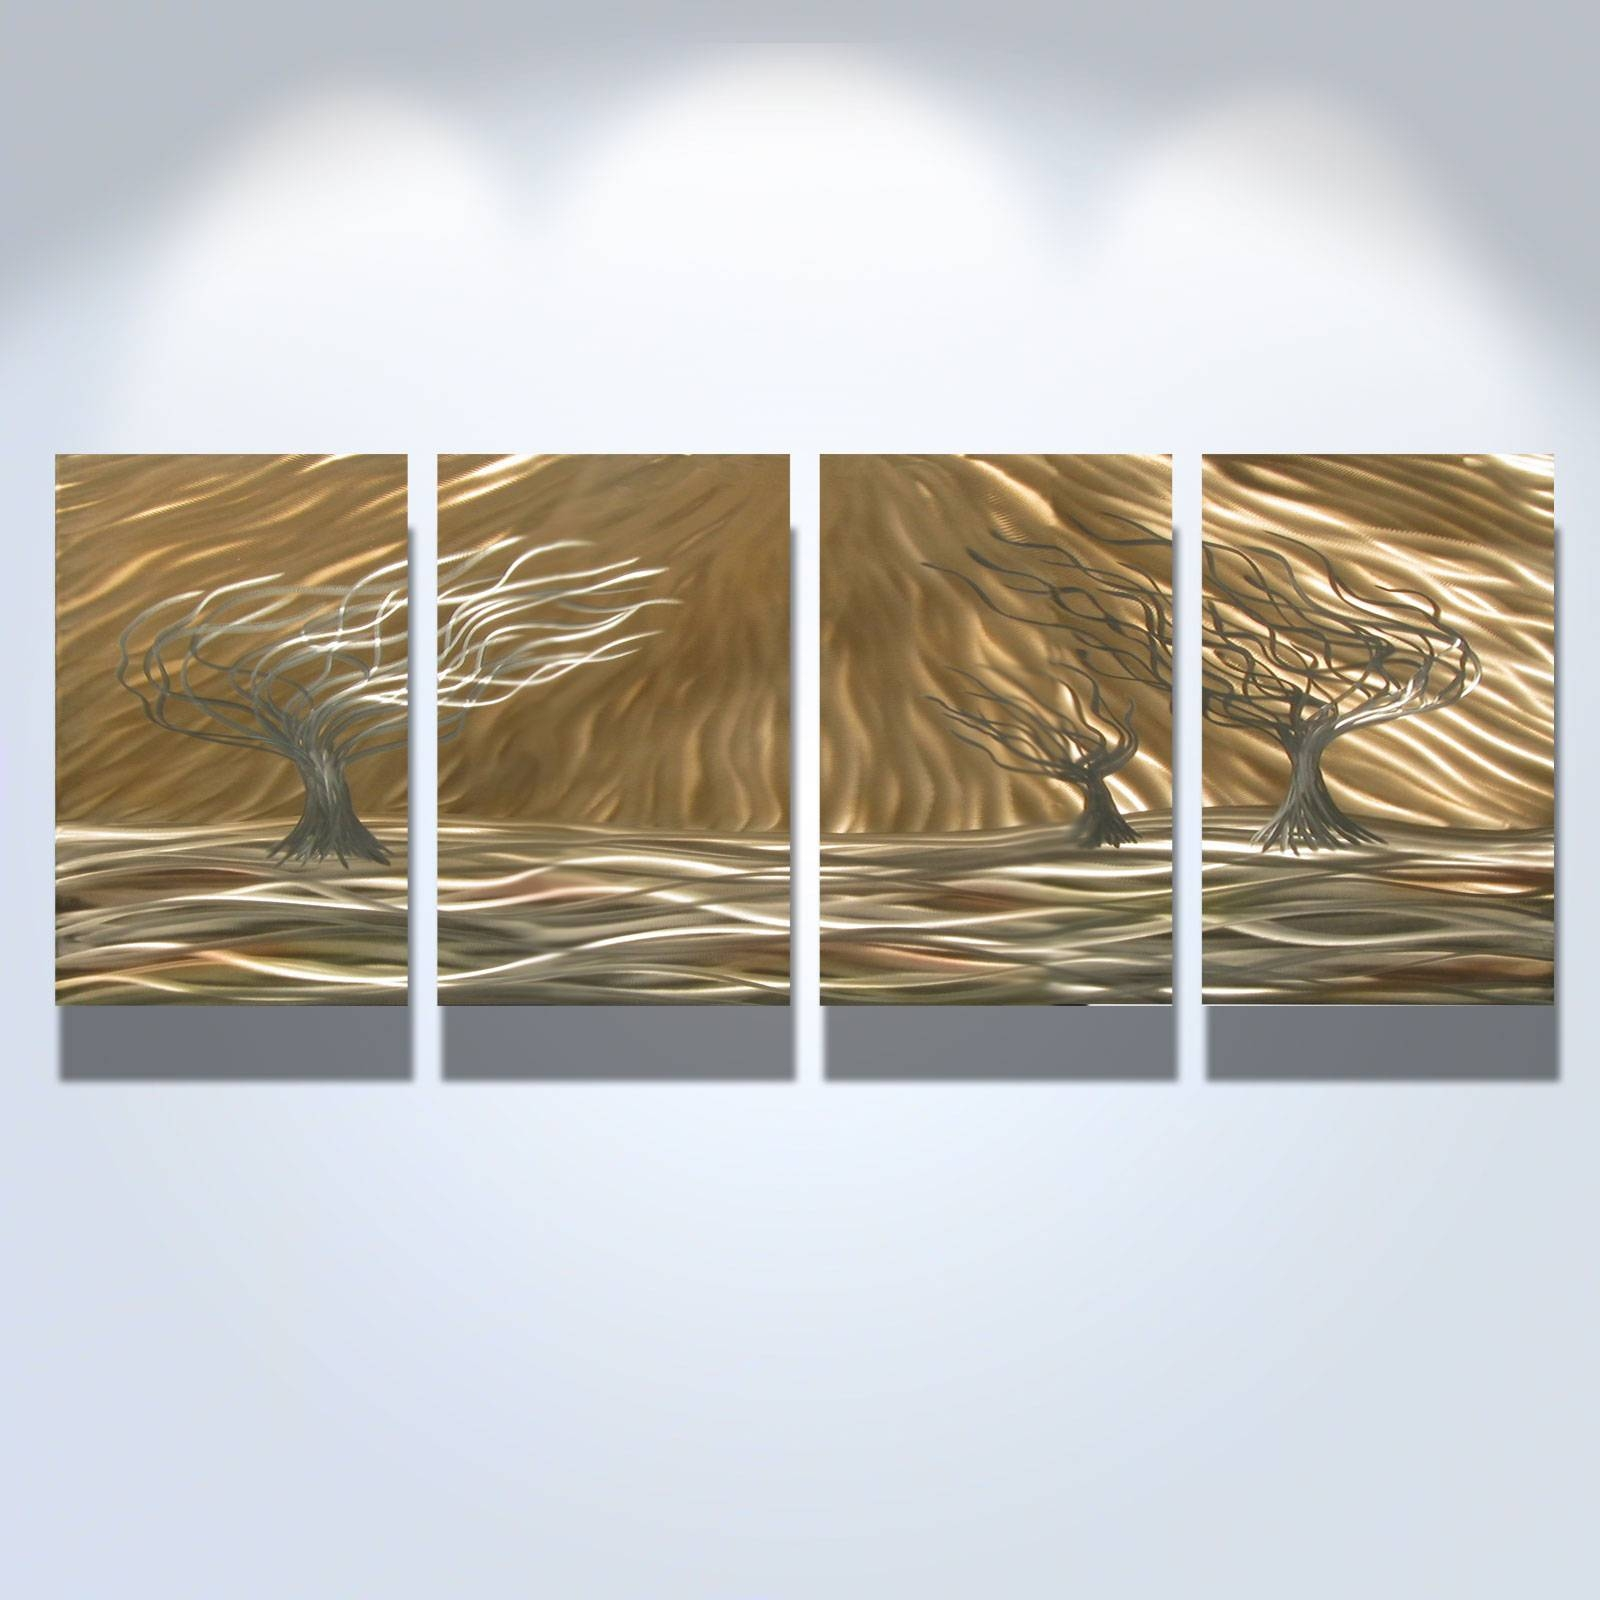 3 Trees 4 Panel – Abstract Metal Wall Art Contemporary Modern In Most Recently Released Three Panel Wall Art (View 12 of 20)